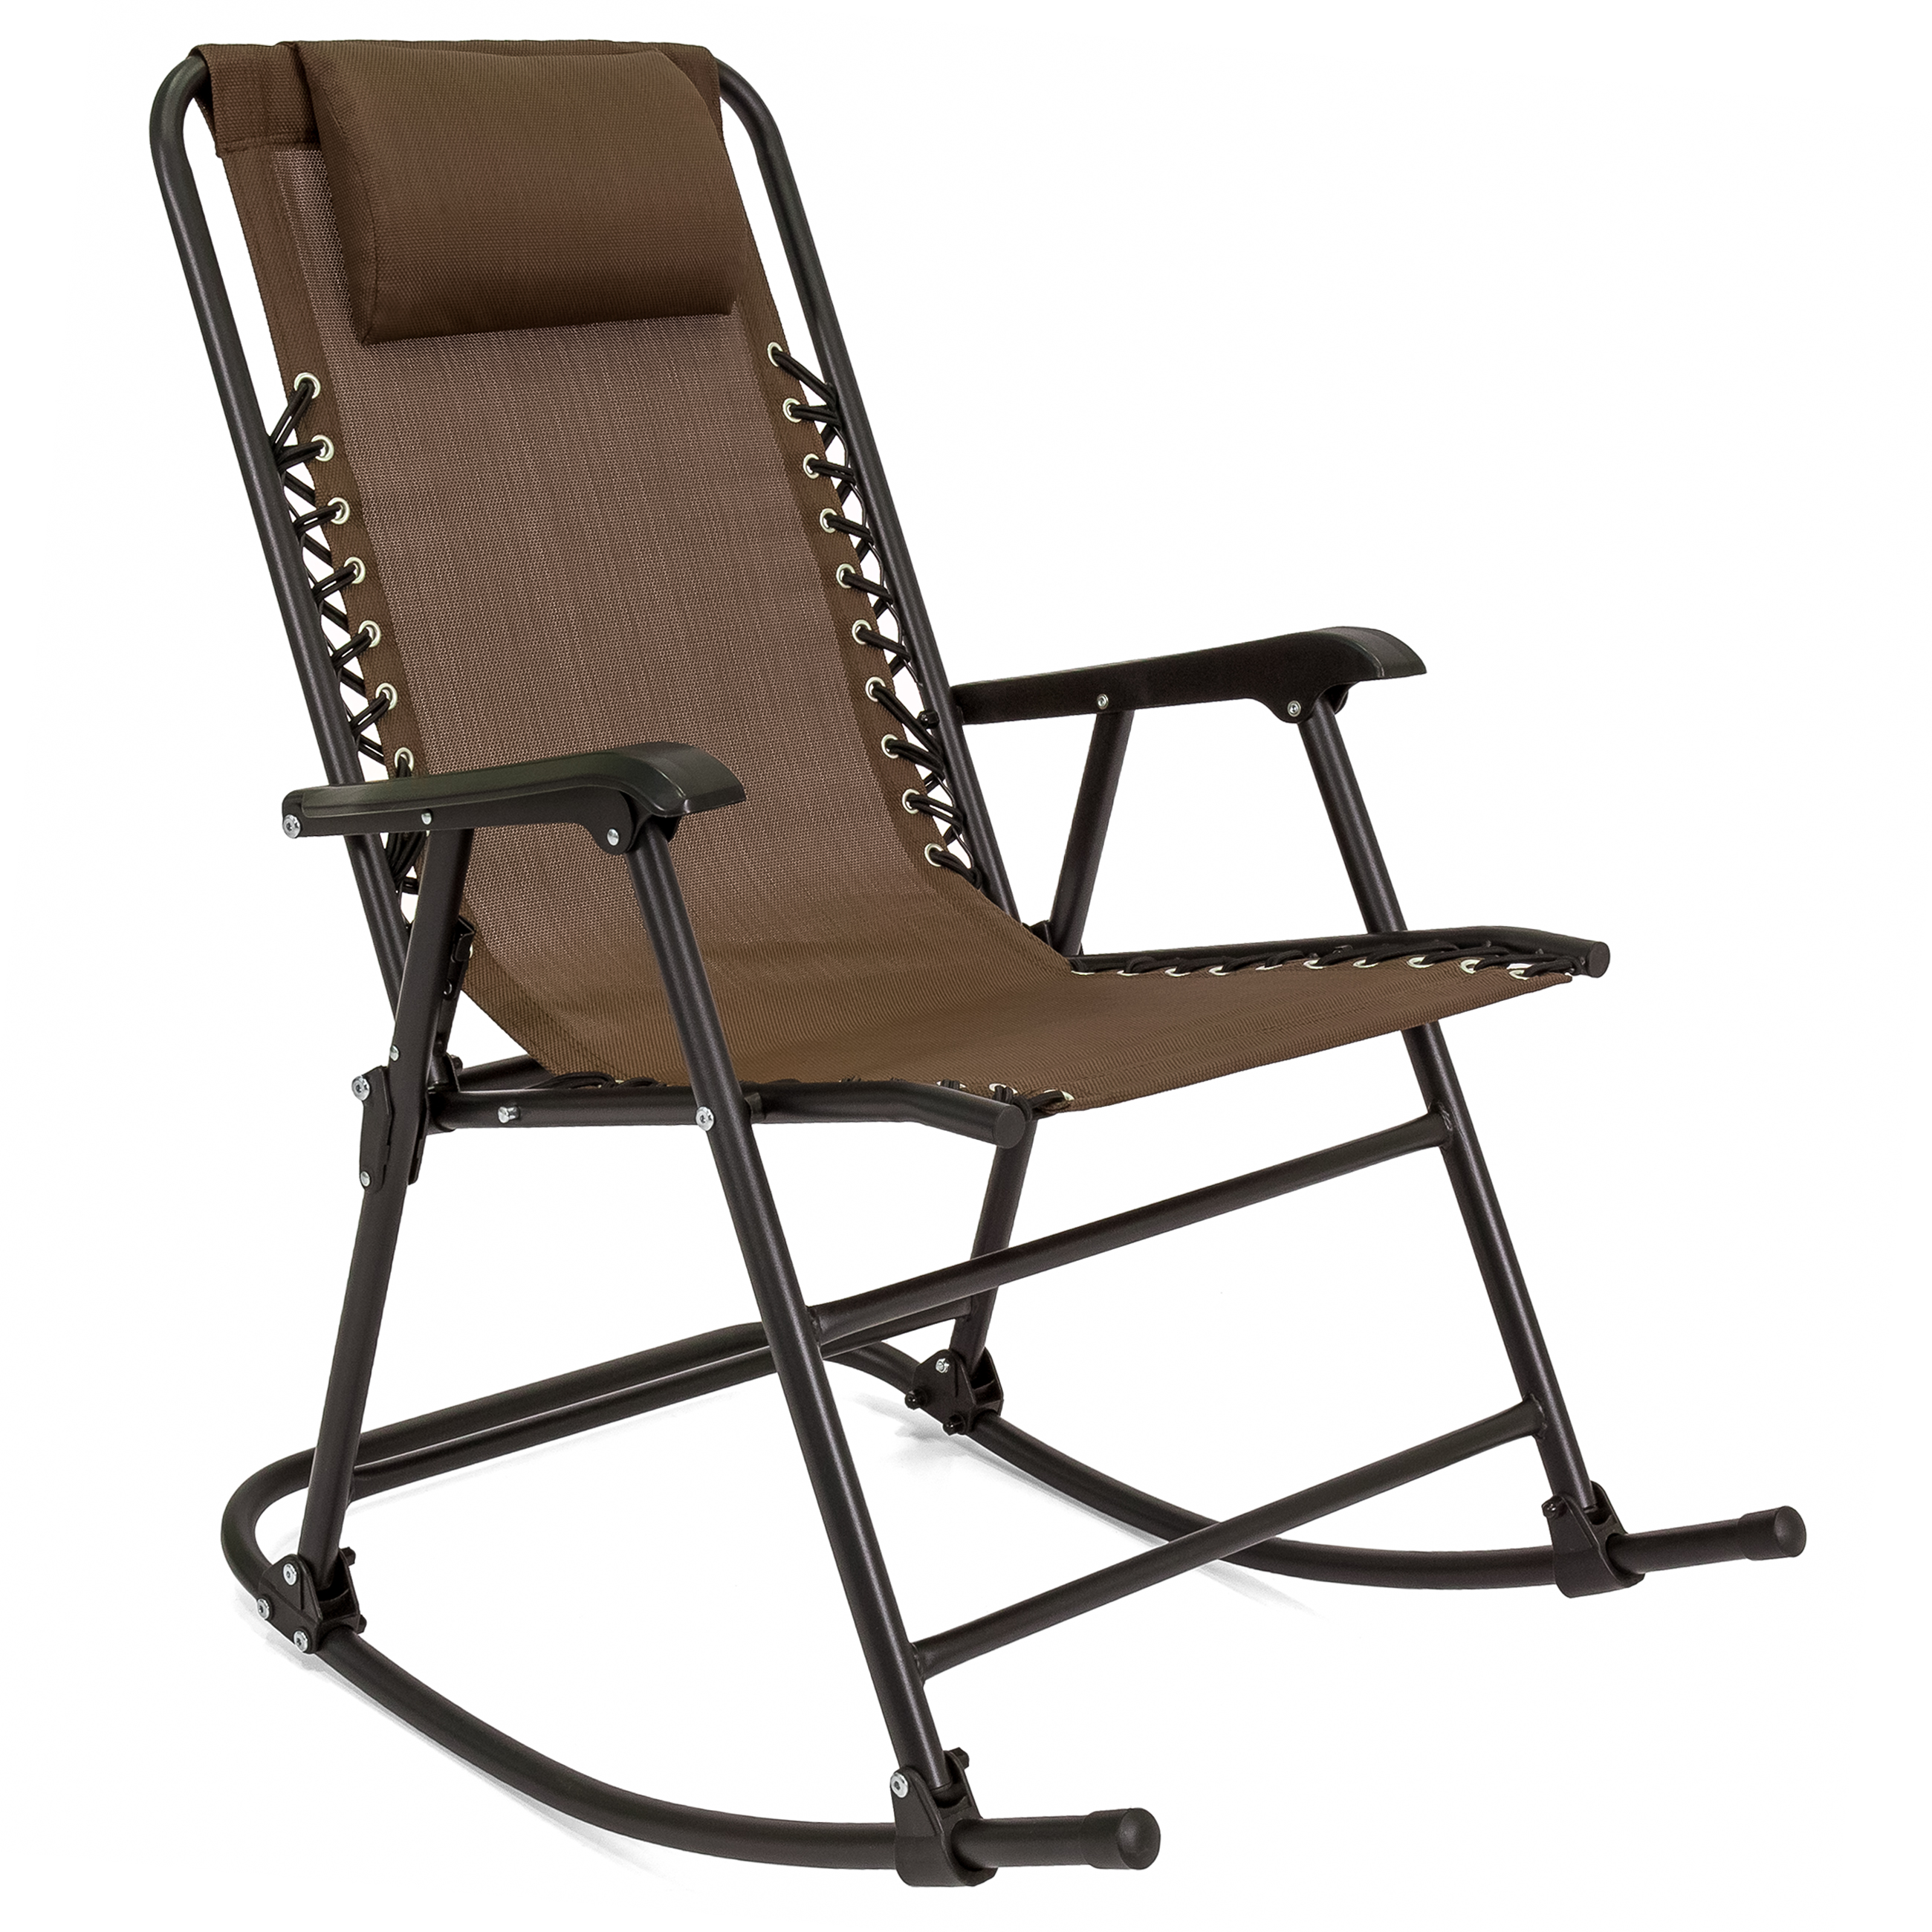 Reclining Rocking Chair Best Choice Products Foldable Zero Gravity Rocking Patio